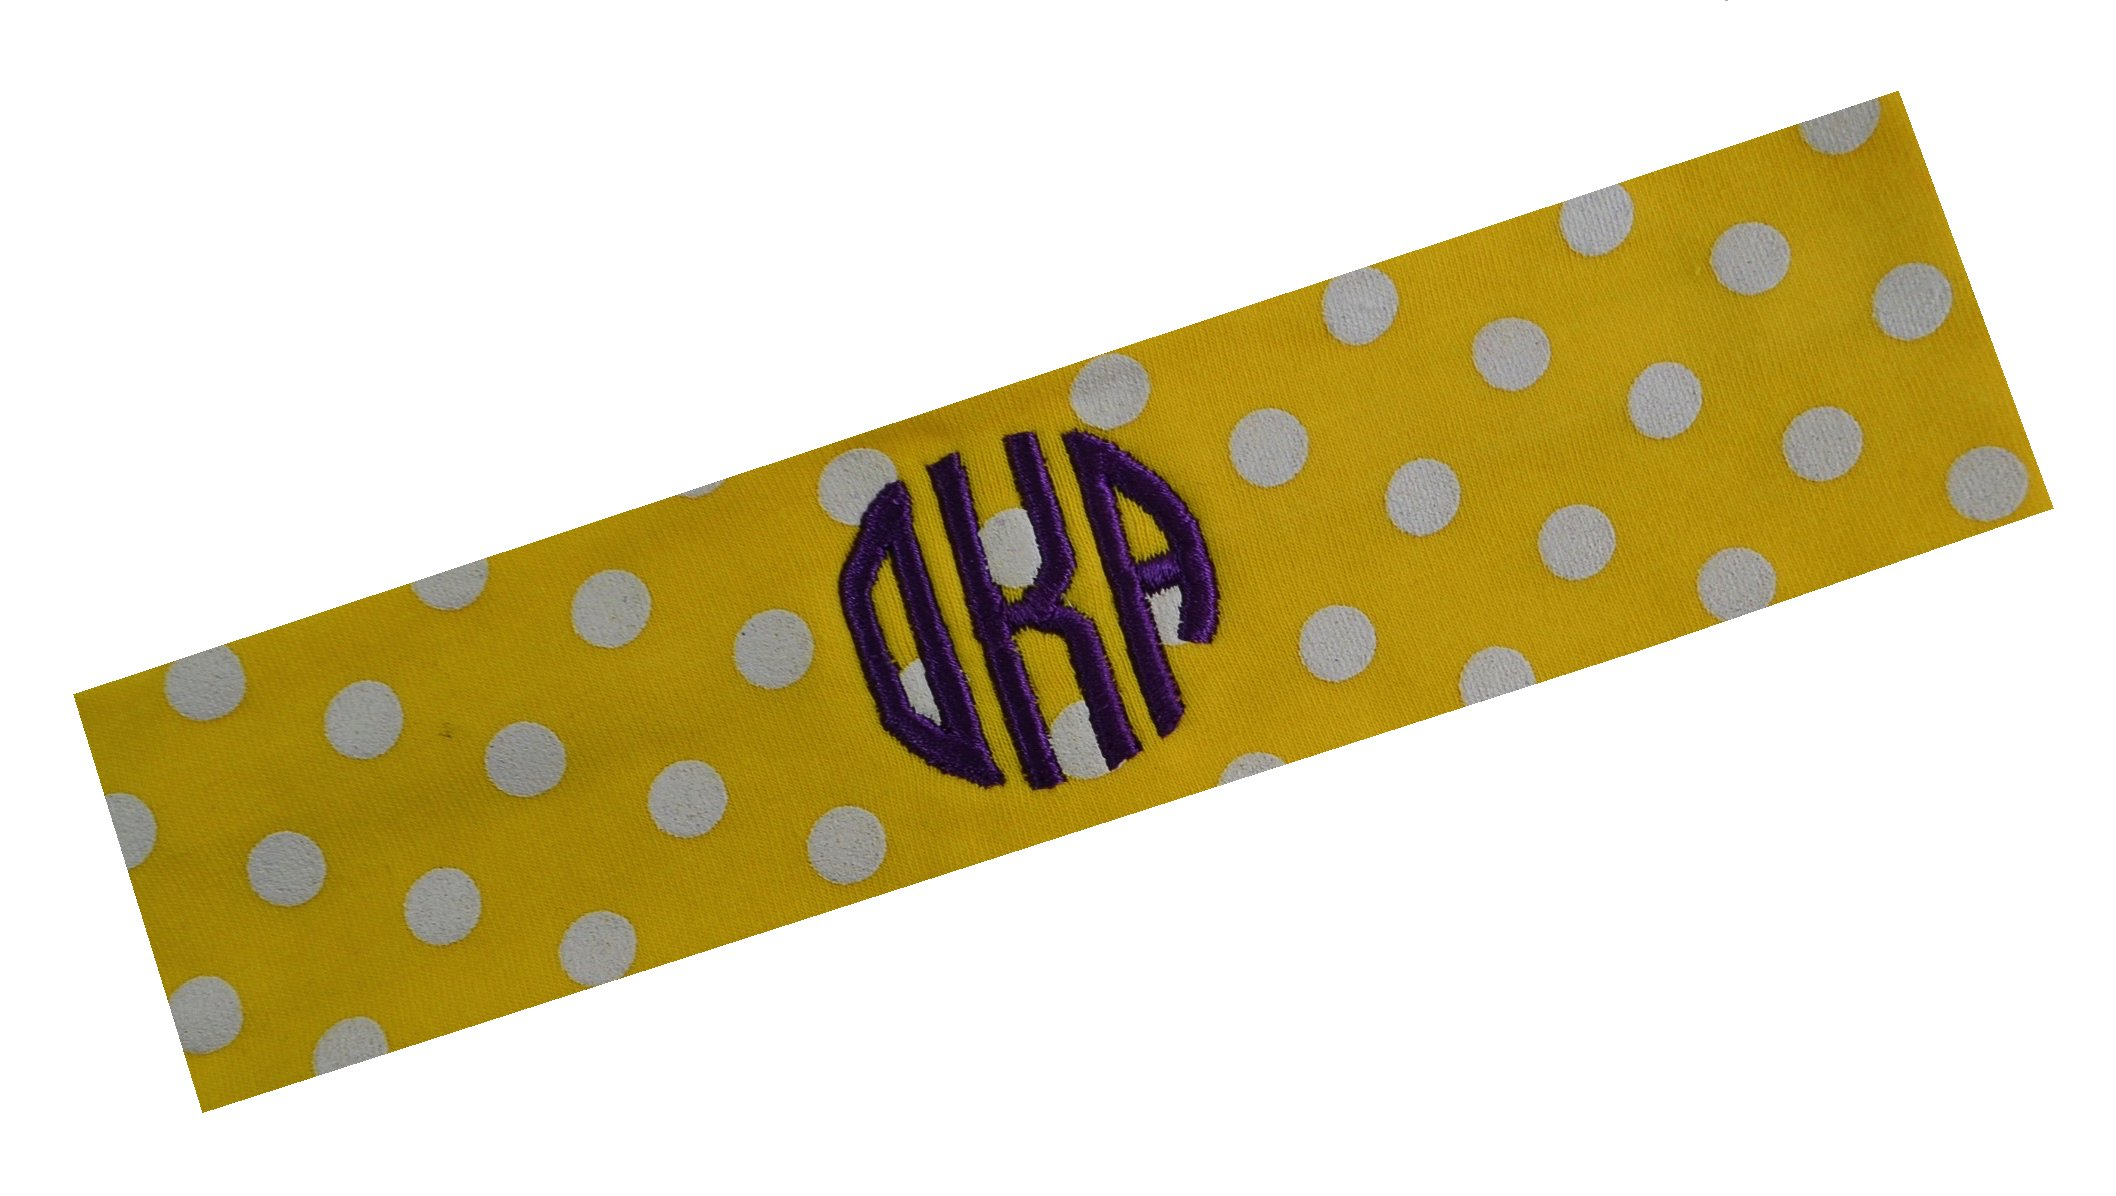 Personalized Monogrammed POLKA DOT Cotton Stretch Headband By Funny Girl Designs (2.5 INCH WIDE HEADBAND)